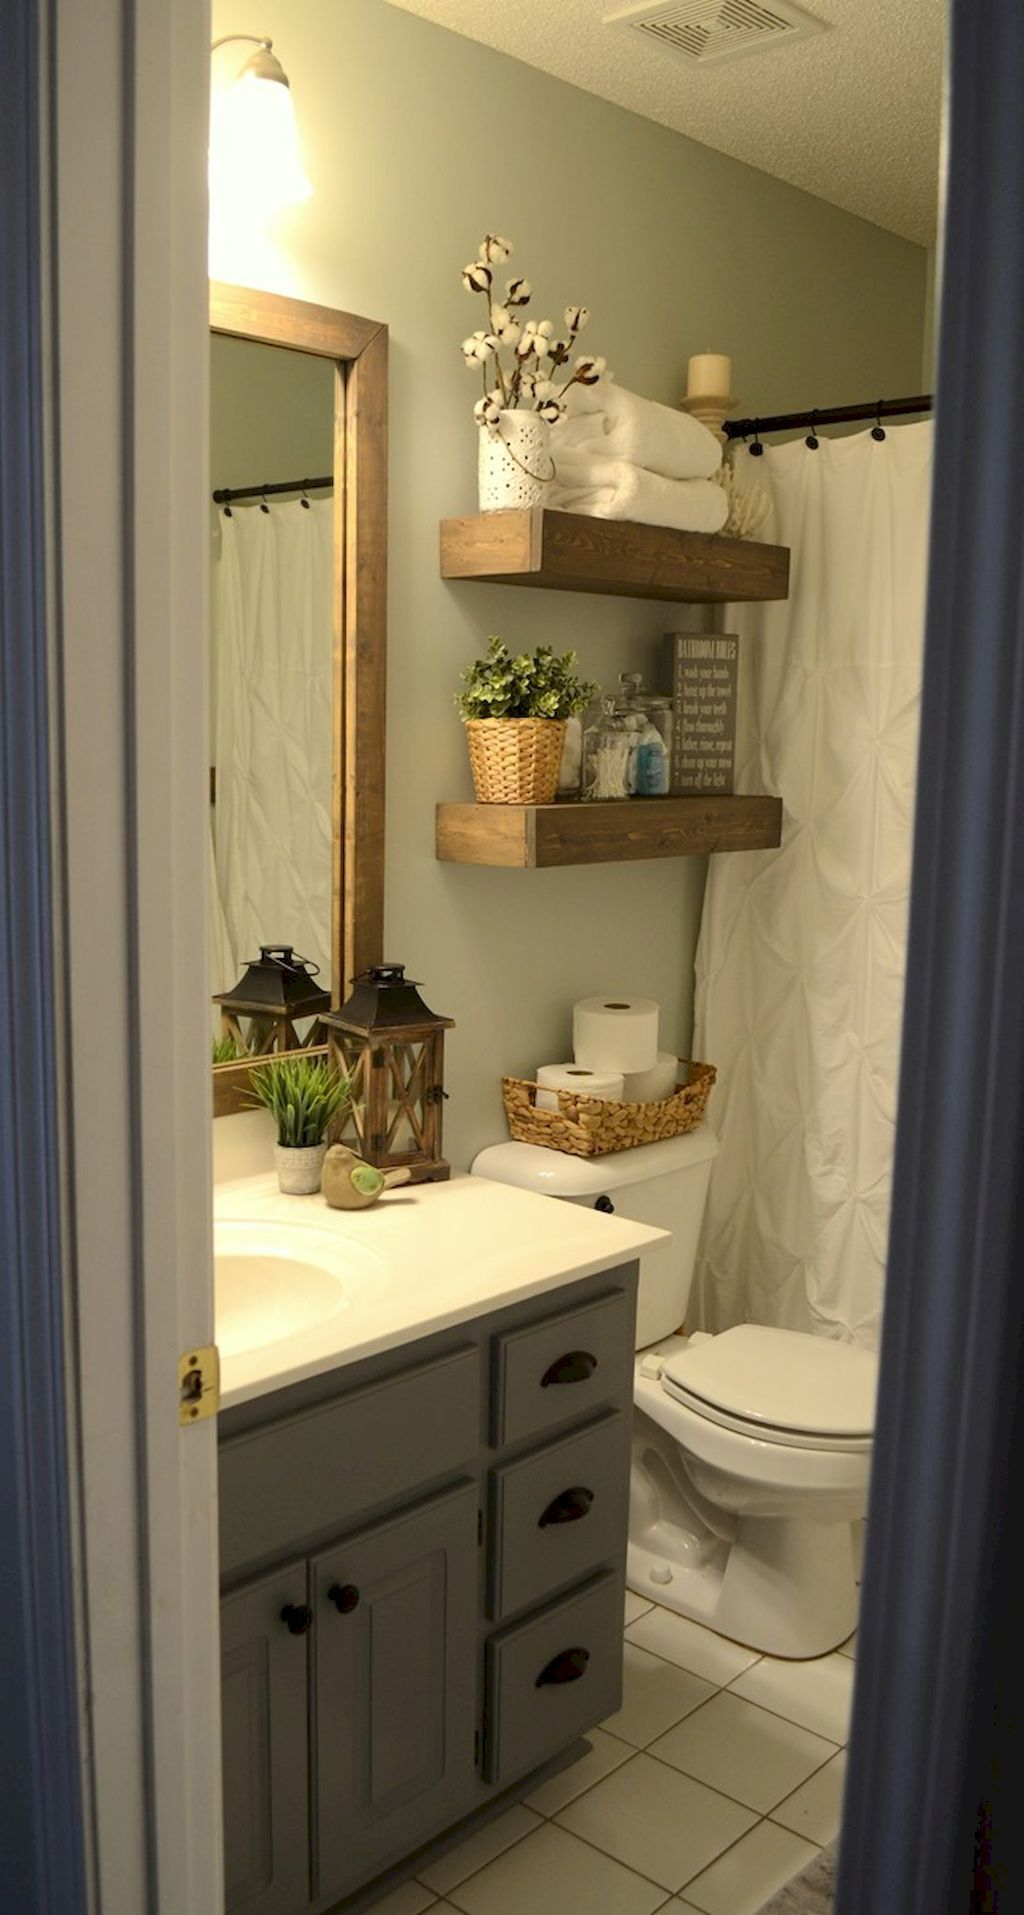 Cool Vintage Farmhouse Bathroom Remodel Ideas On A Budget Https - Pinterest bathroom remodel on a budget